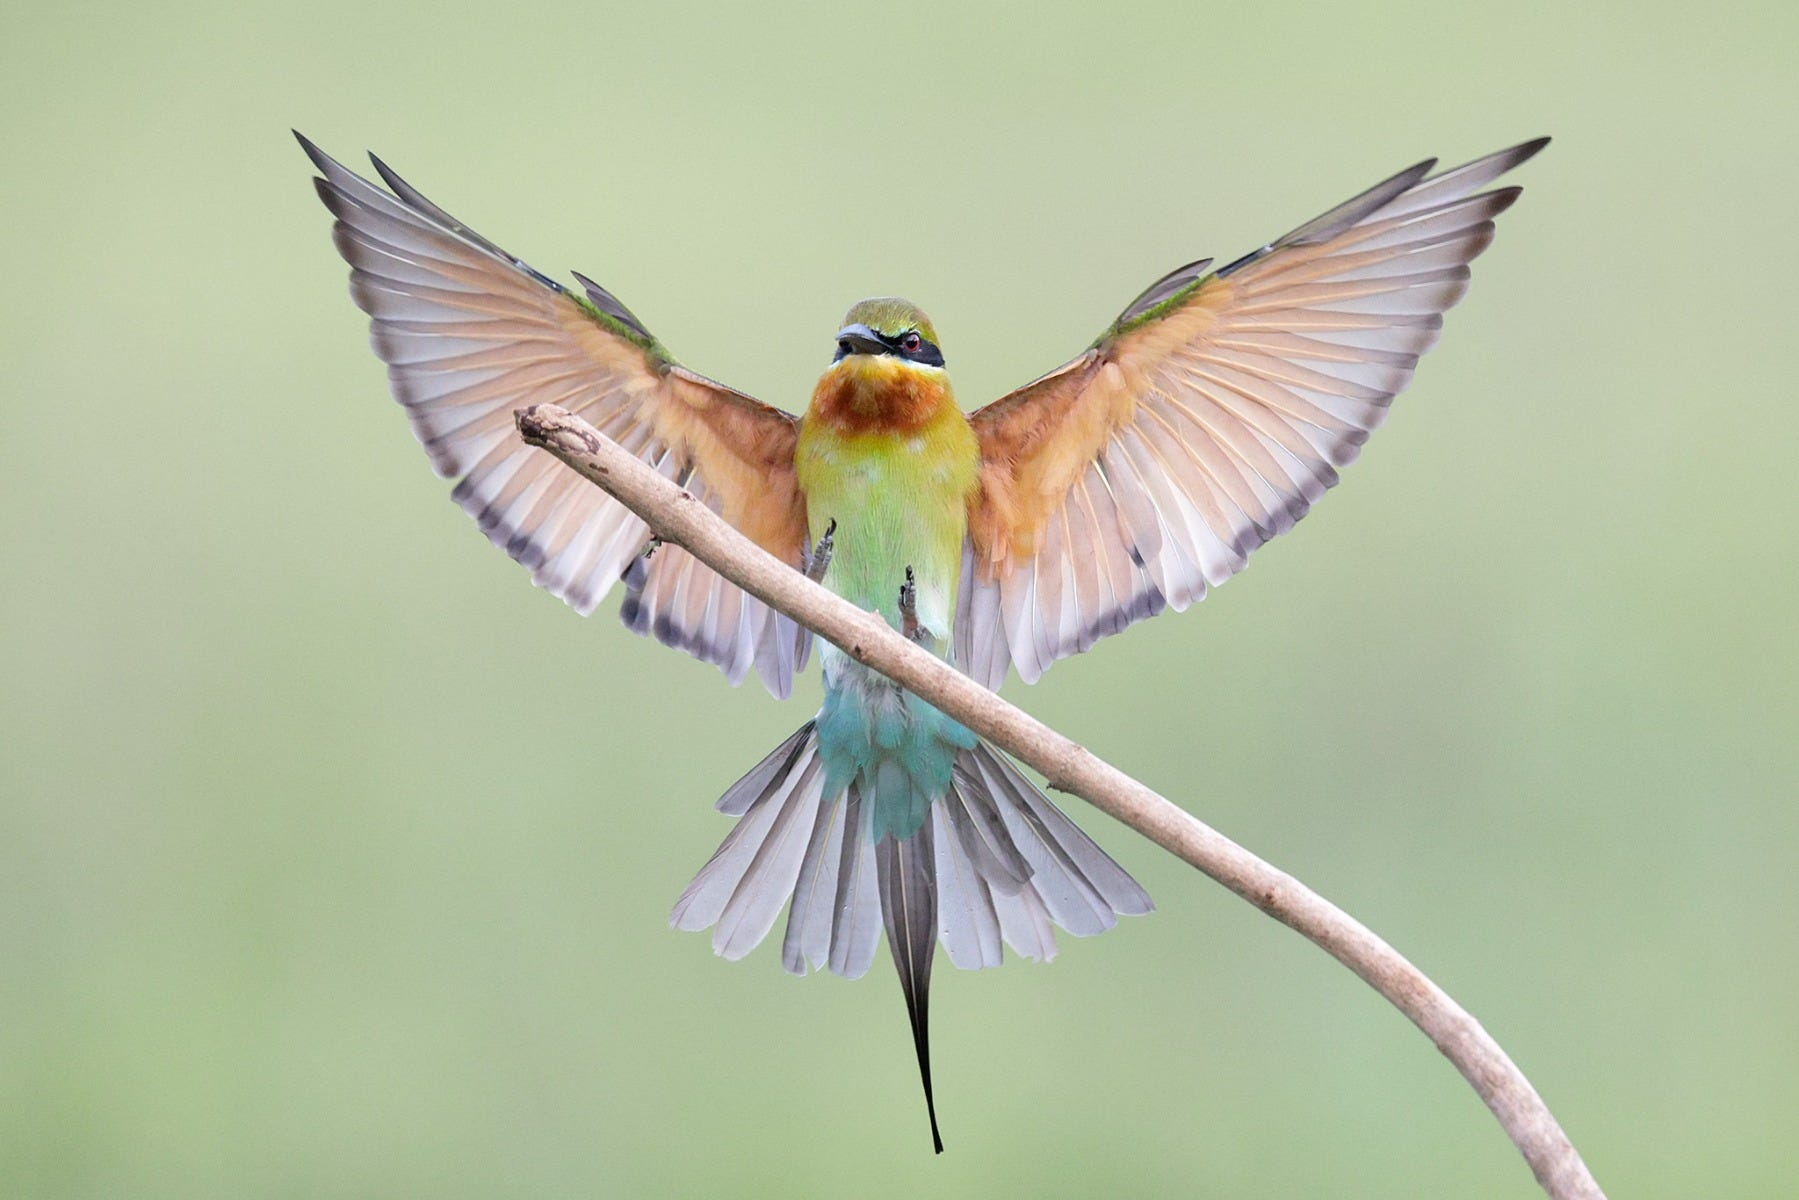 Blue-tailed bee-eater shot by Canon Photographer William Tan using Canon EOS R6